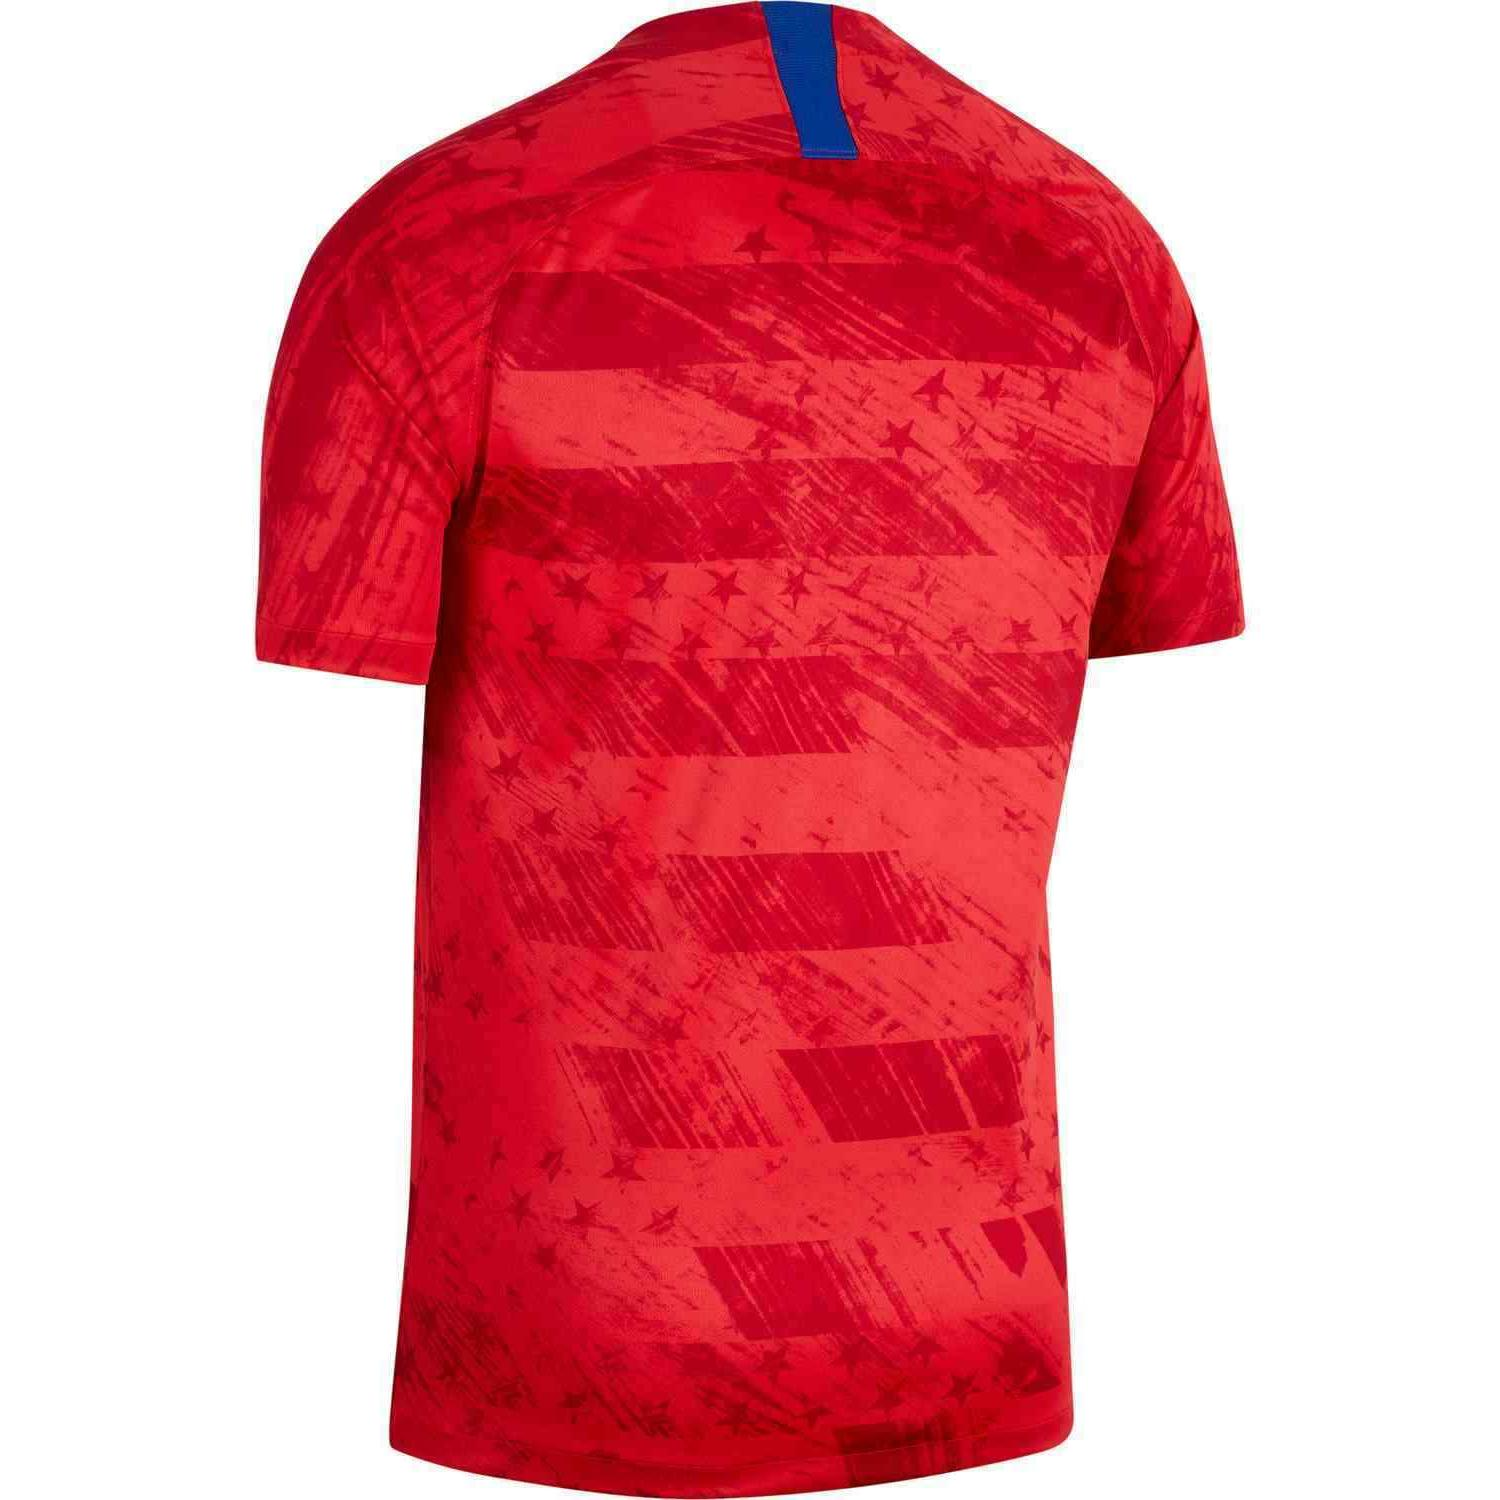 USA 2019 Soccer AWAY Copa Pulisic Free